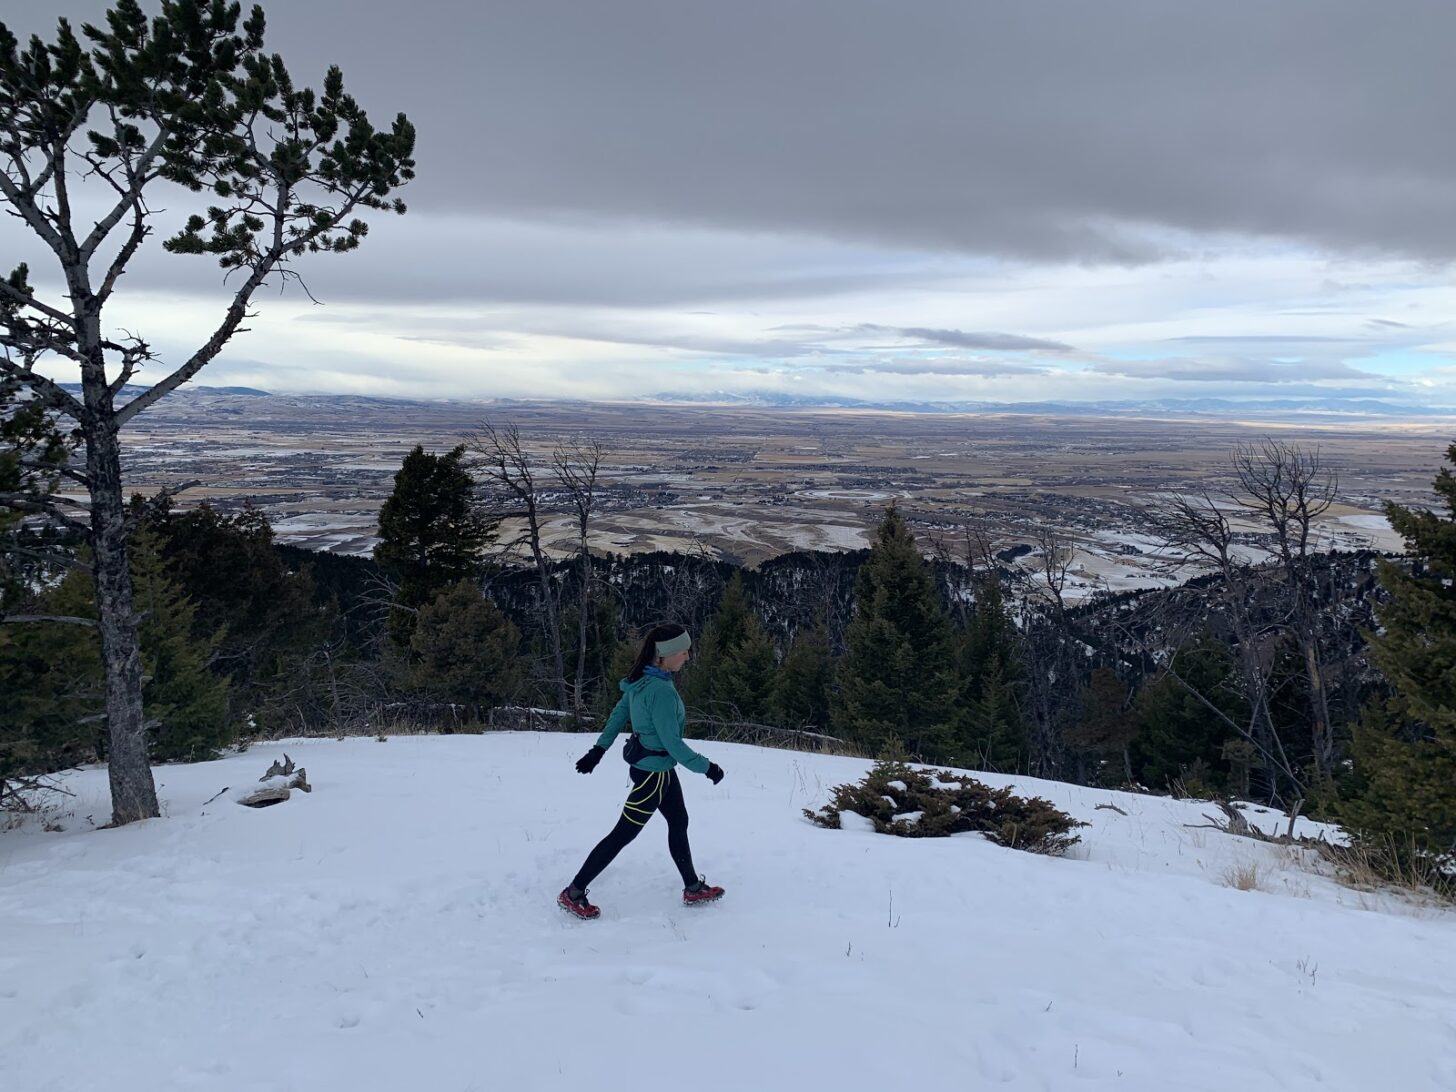 A woman hikes on a hill above the city of Bozeman, Montana